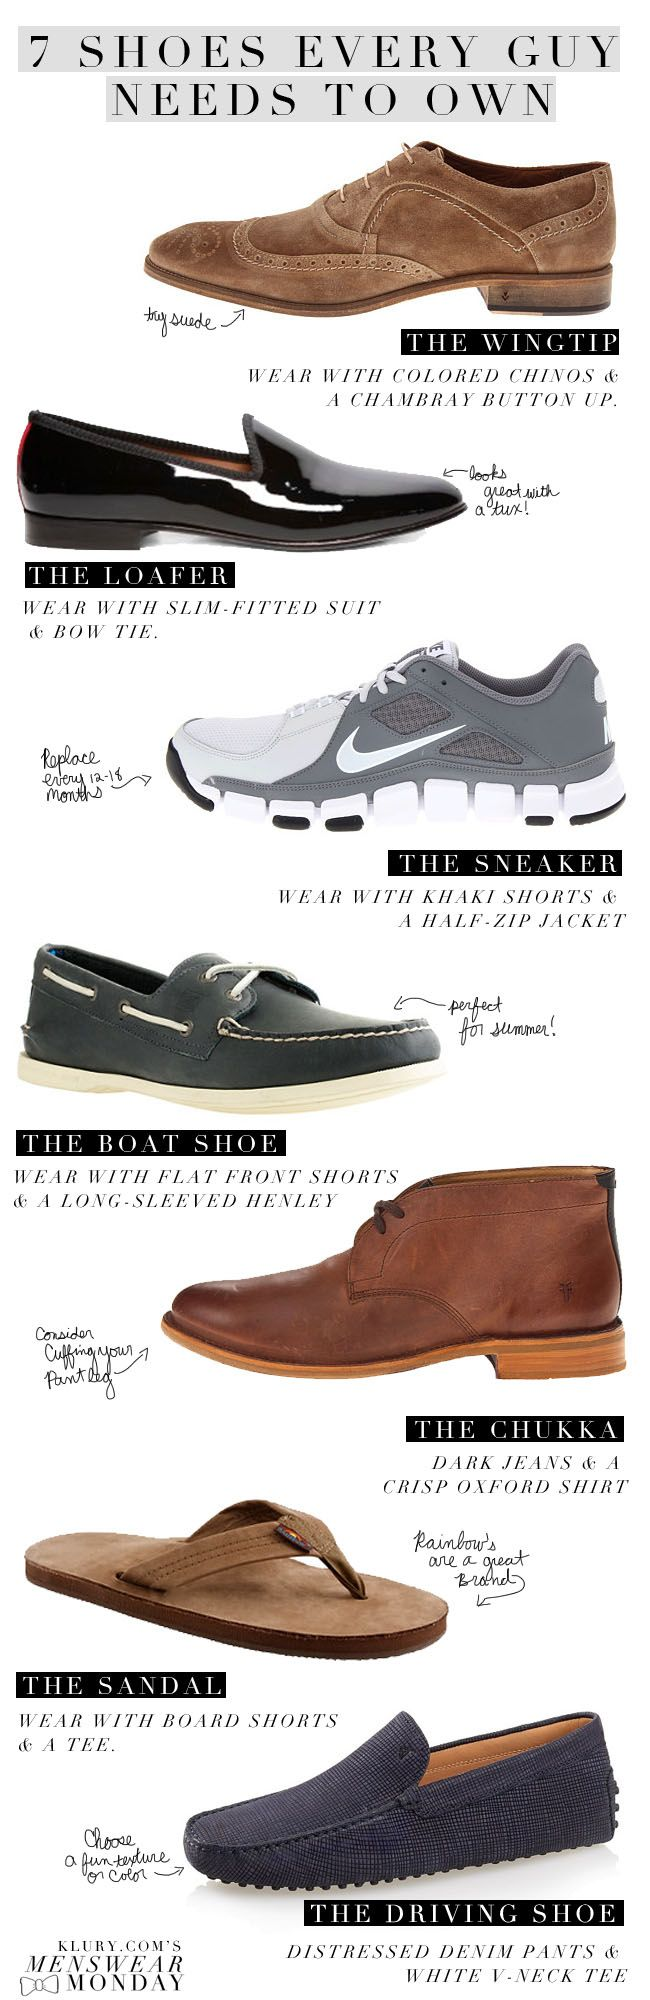 7 Shoes Every Guy Needs